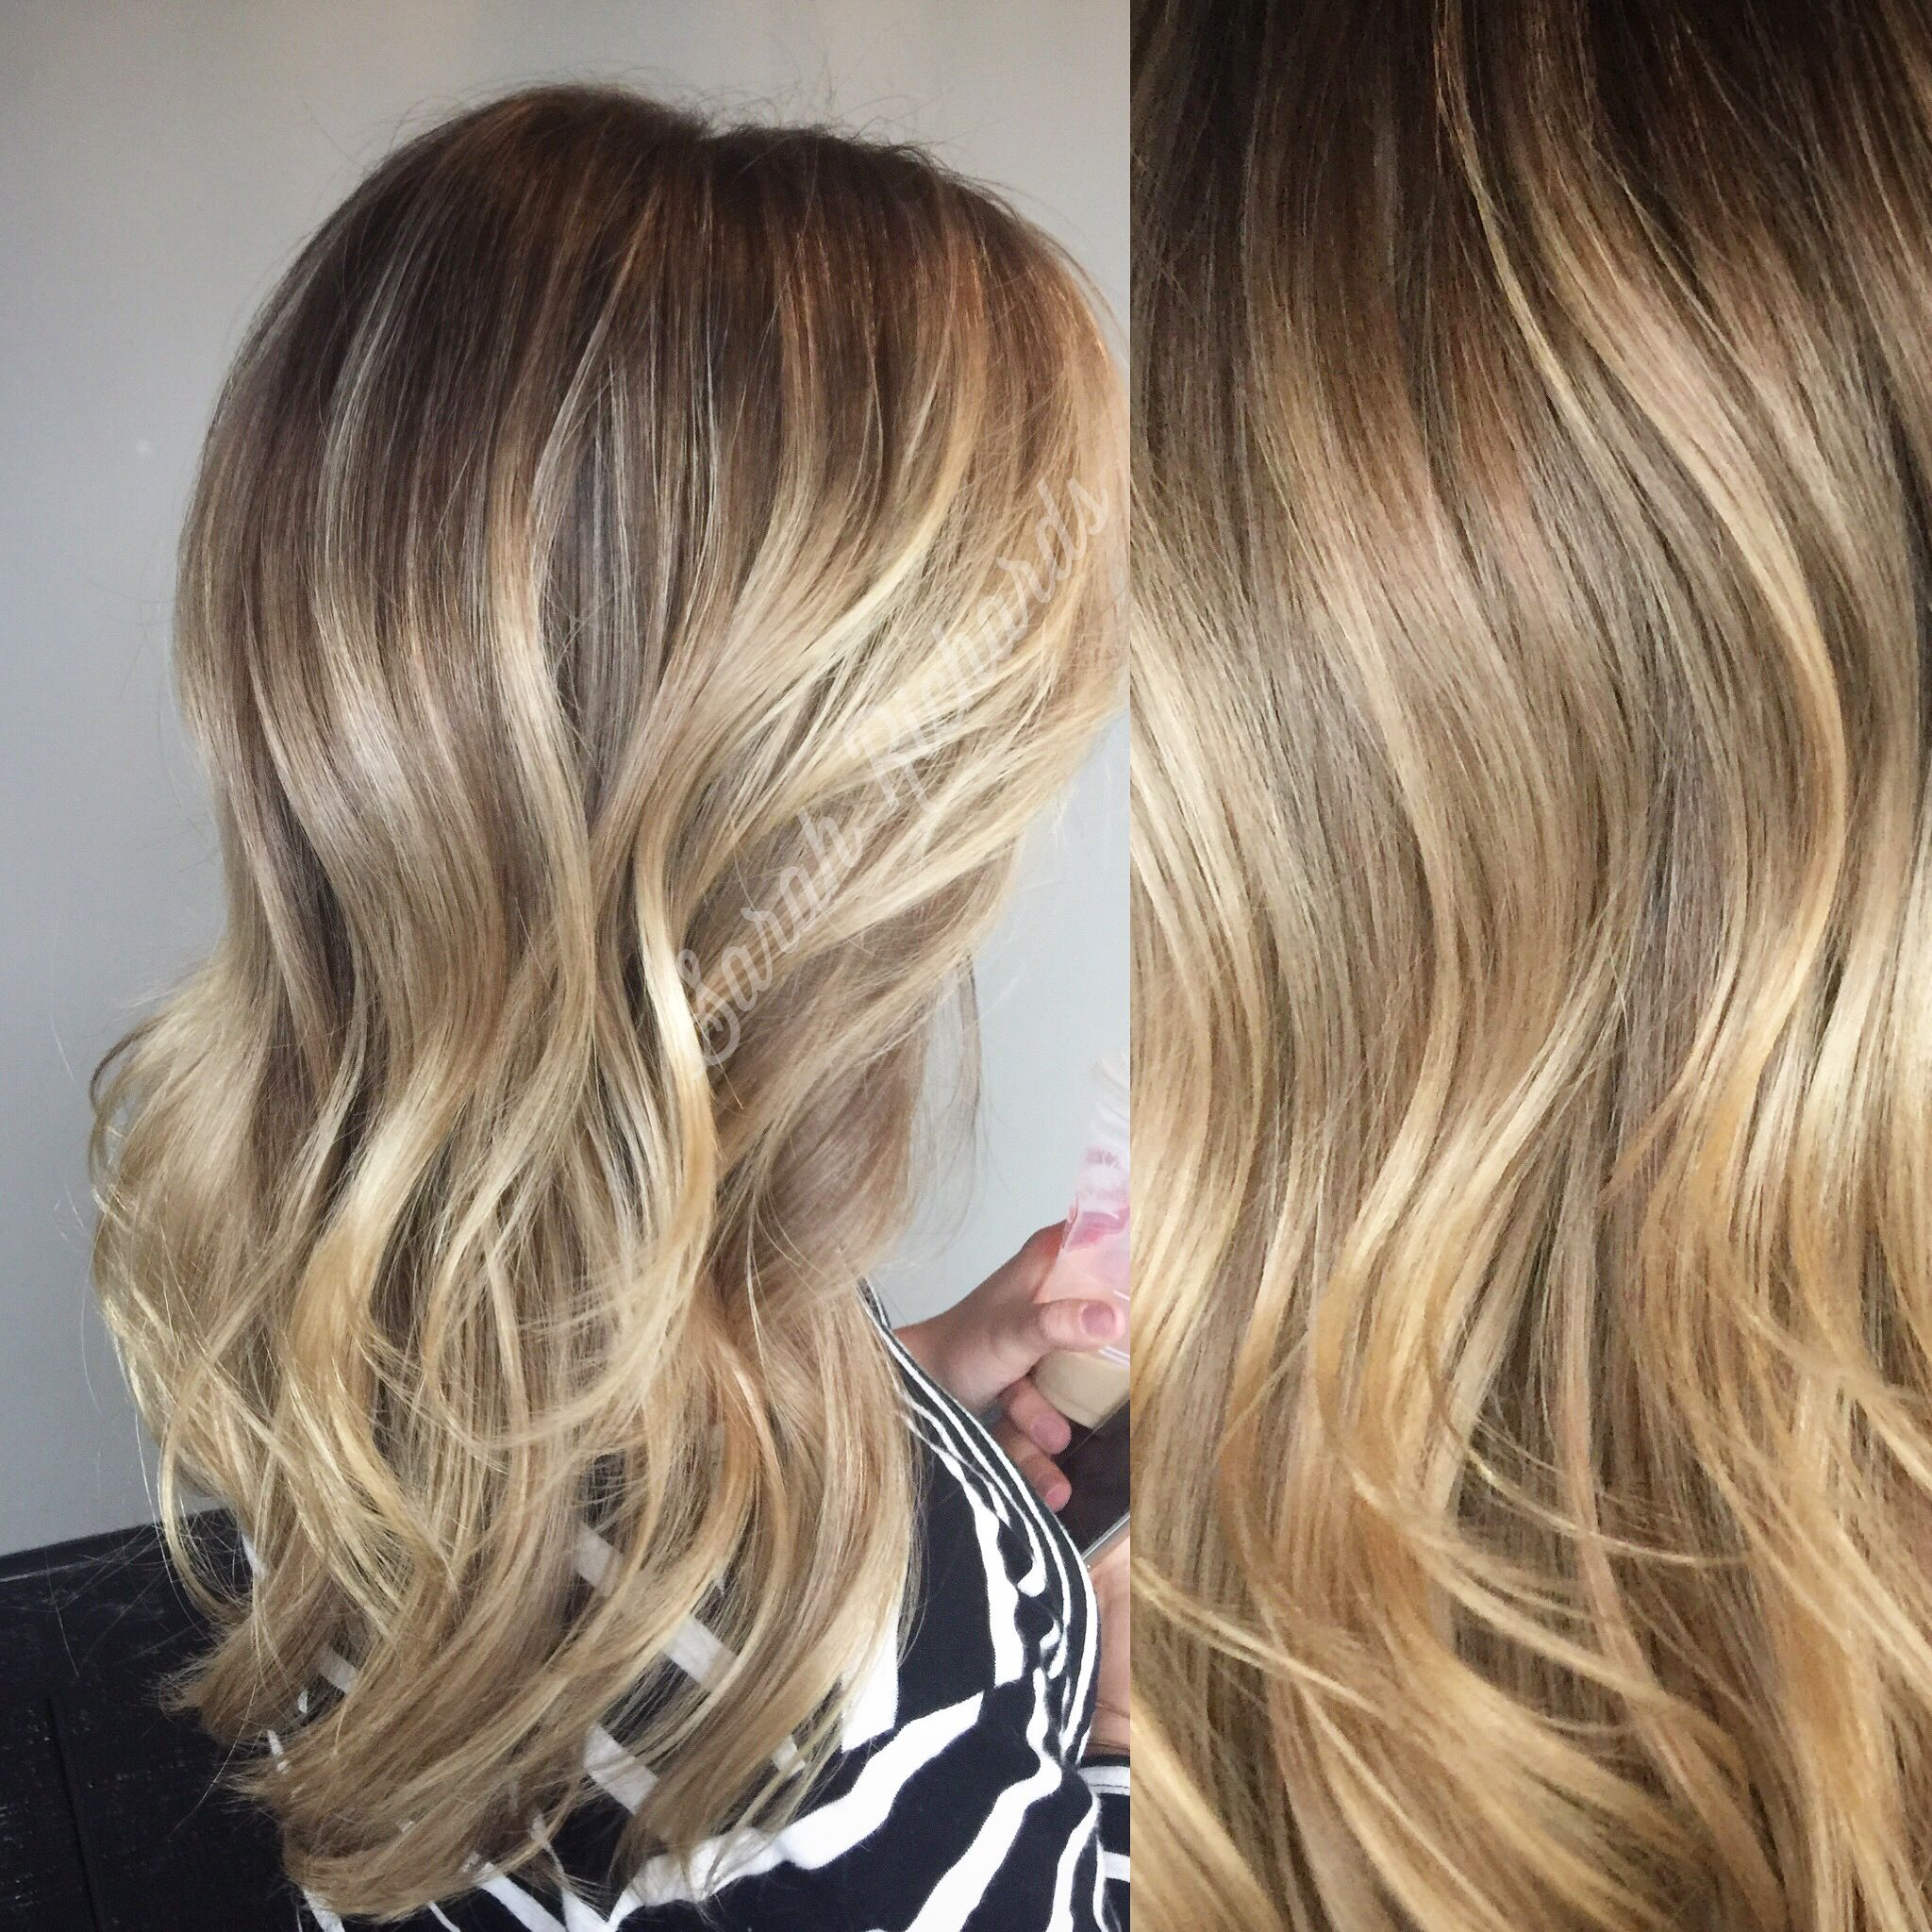 Winter Blonde Shades Eq Redken Color By Sarah Richards At Legal